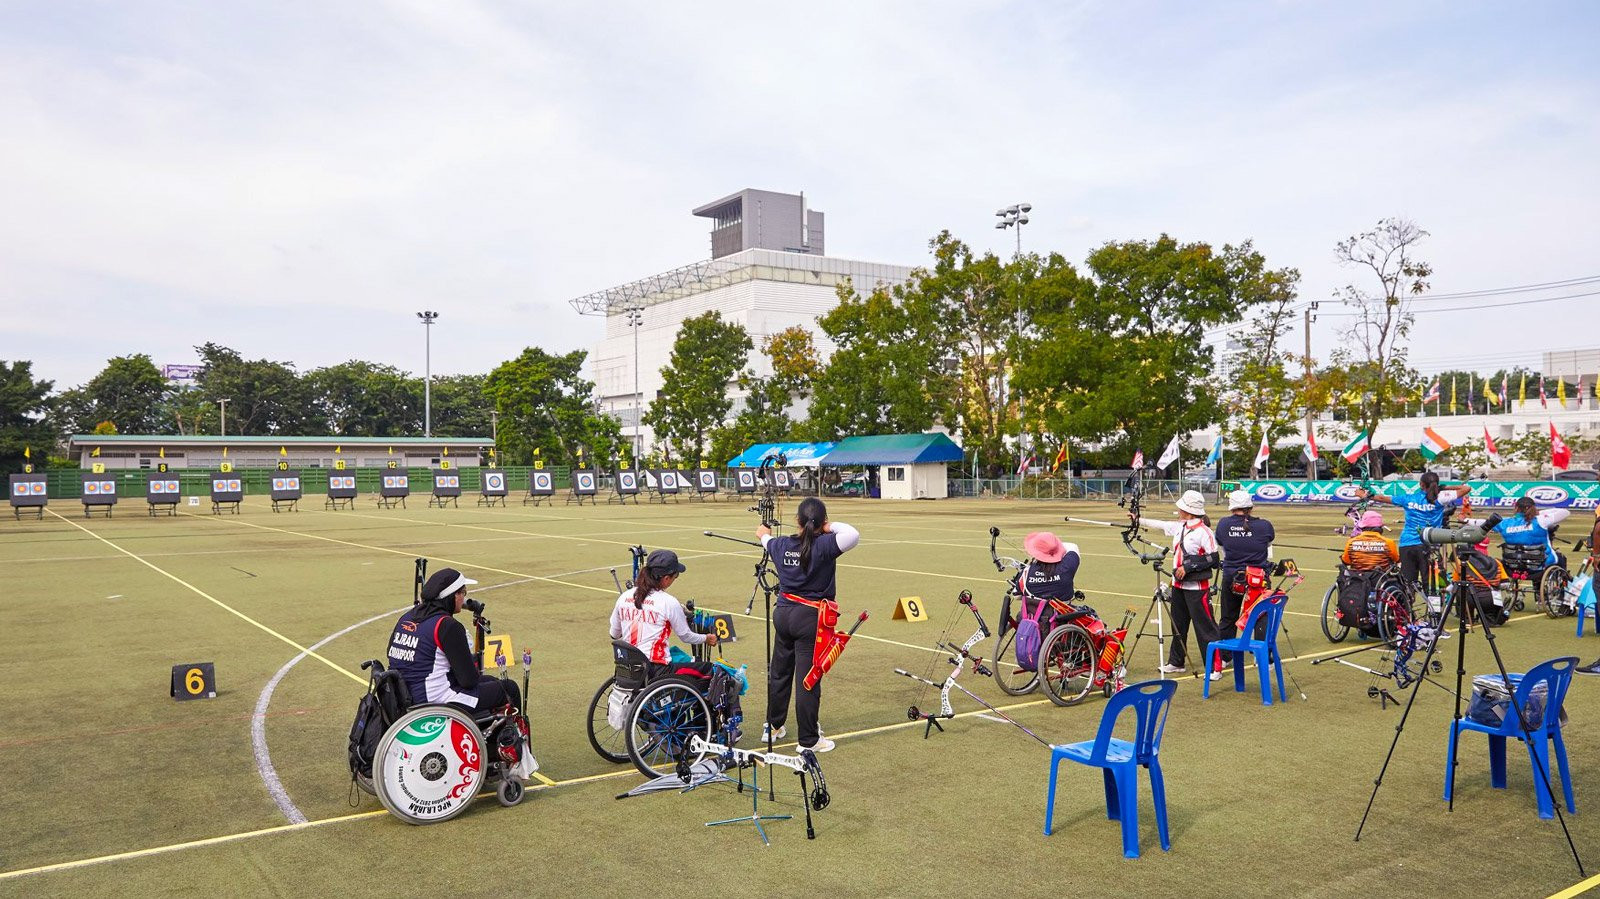 China booked their spots in the mixed recurve and compound women's finals as the team knockout stage began at the Asian Para Archery Championships ©World Archery